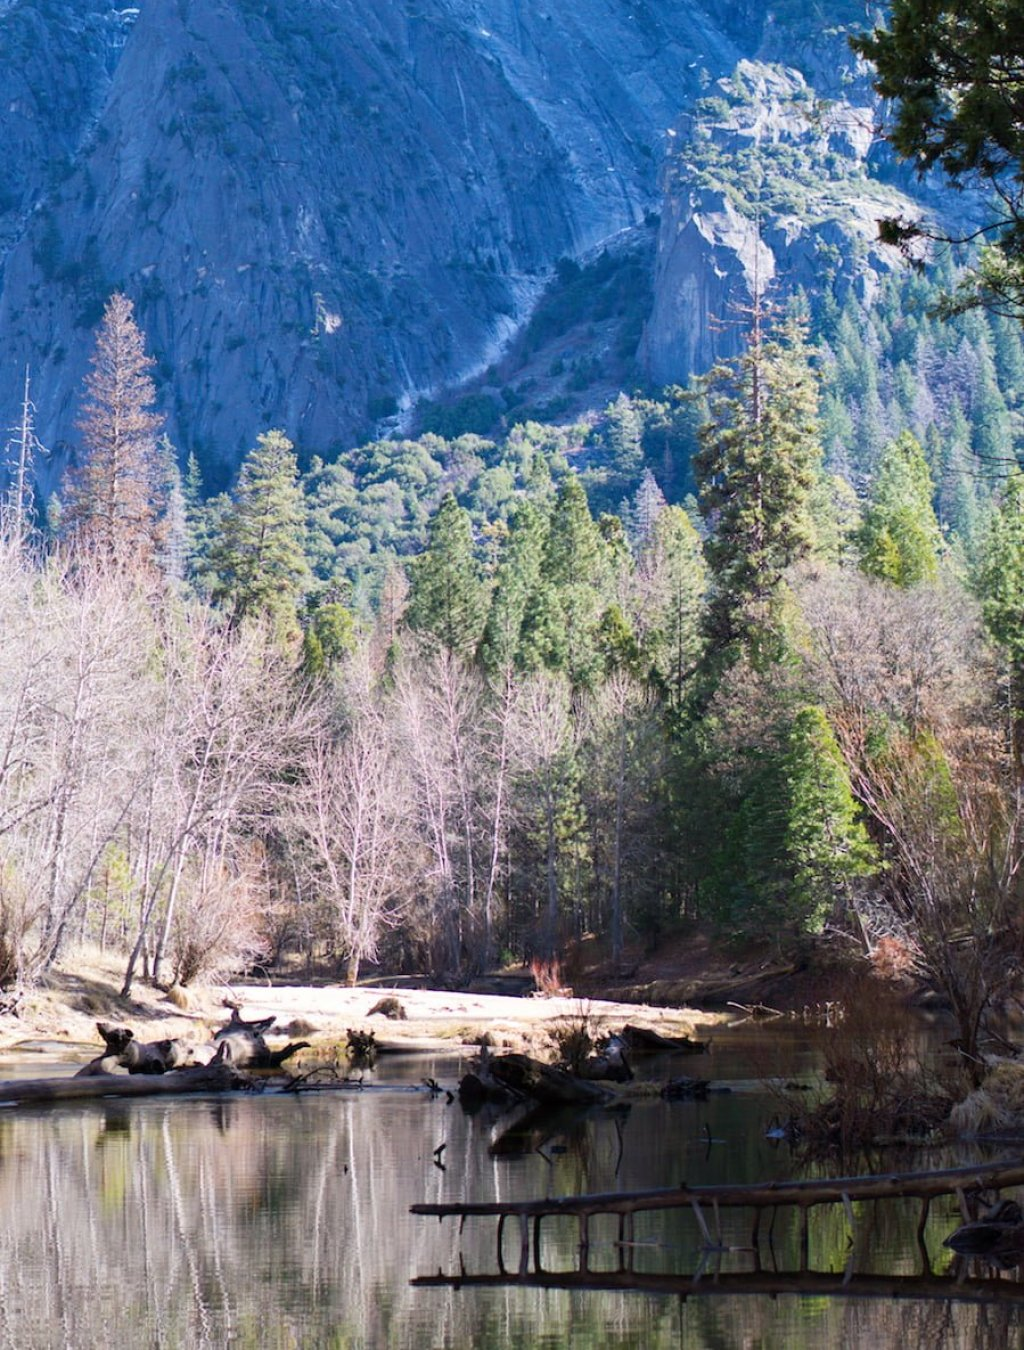 River • Useful Things to Know Before Visiting Yosemite and Sequoia in the Winter | The Wanderful Me